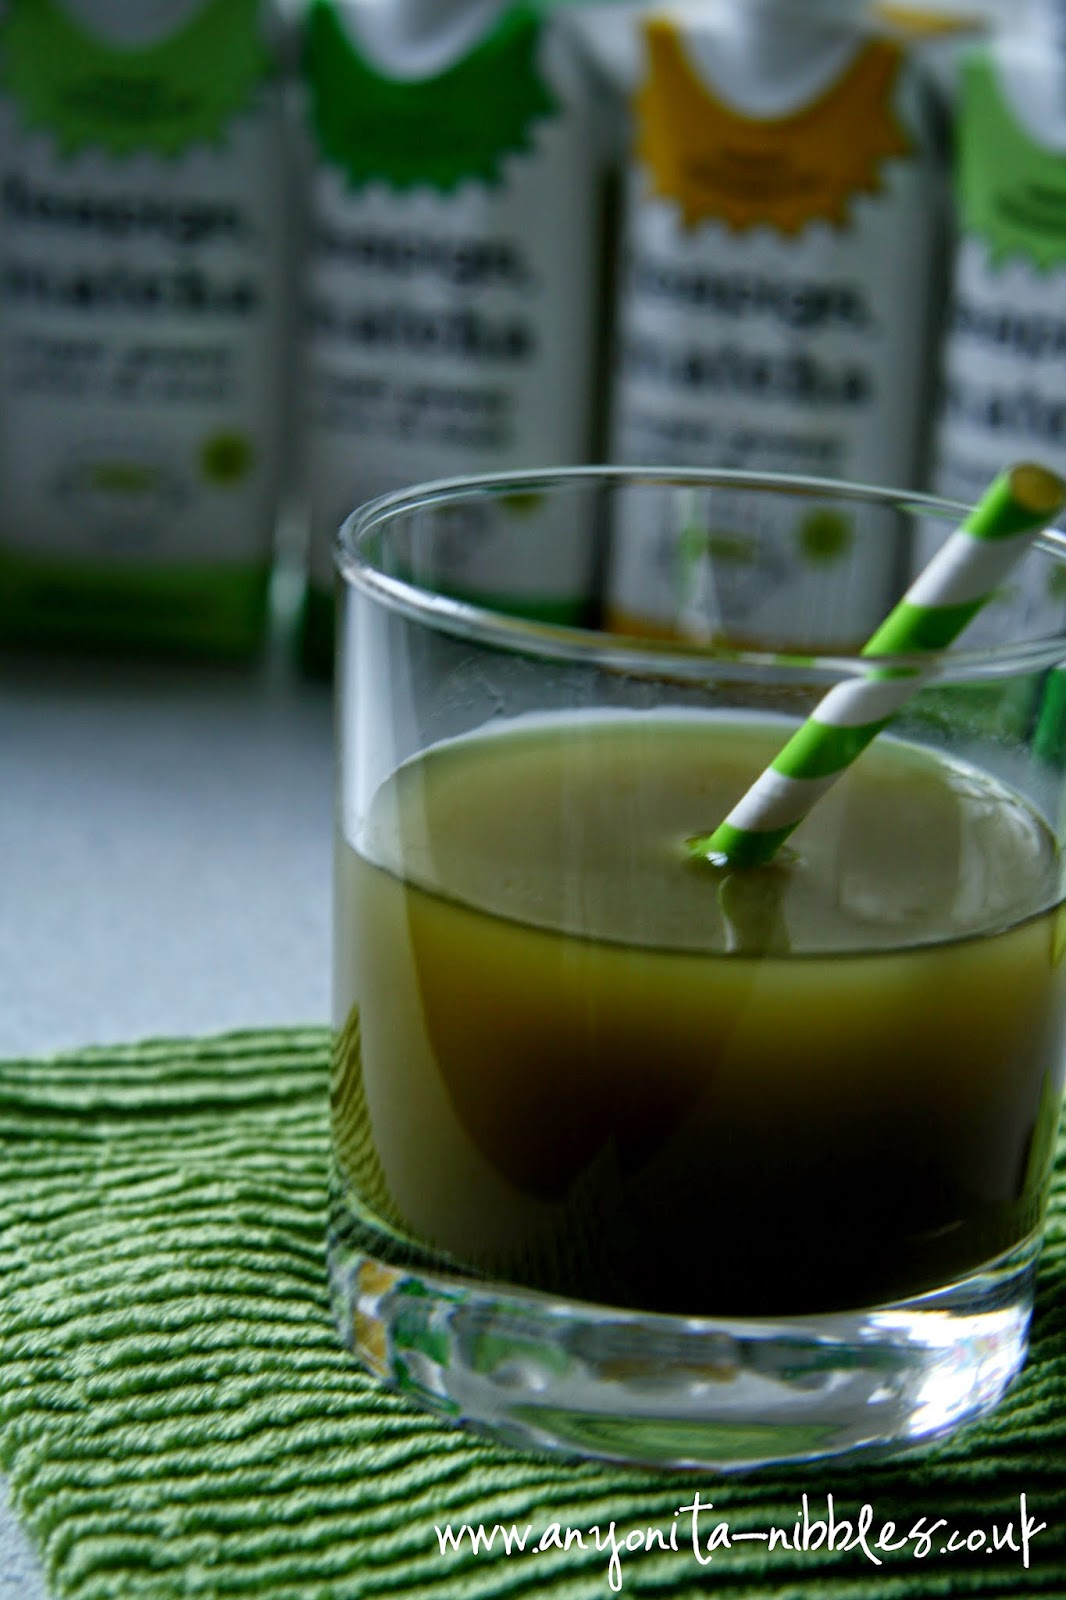 Healthy and delicious, a Teapigs matcha green tea drink from www.anyonita-nibbles.co.uk